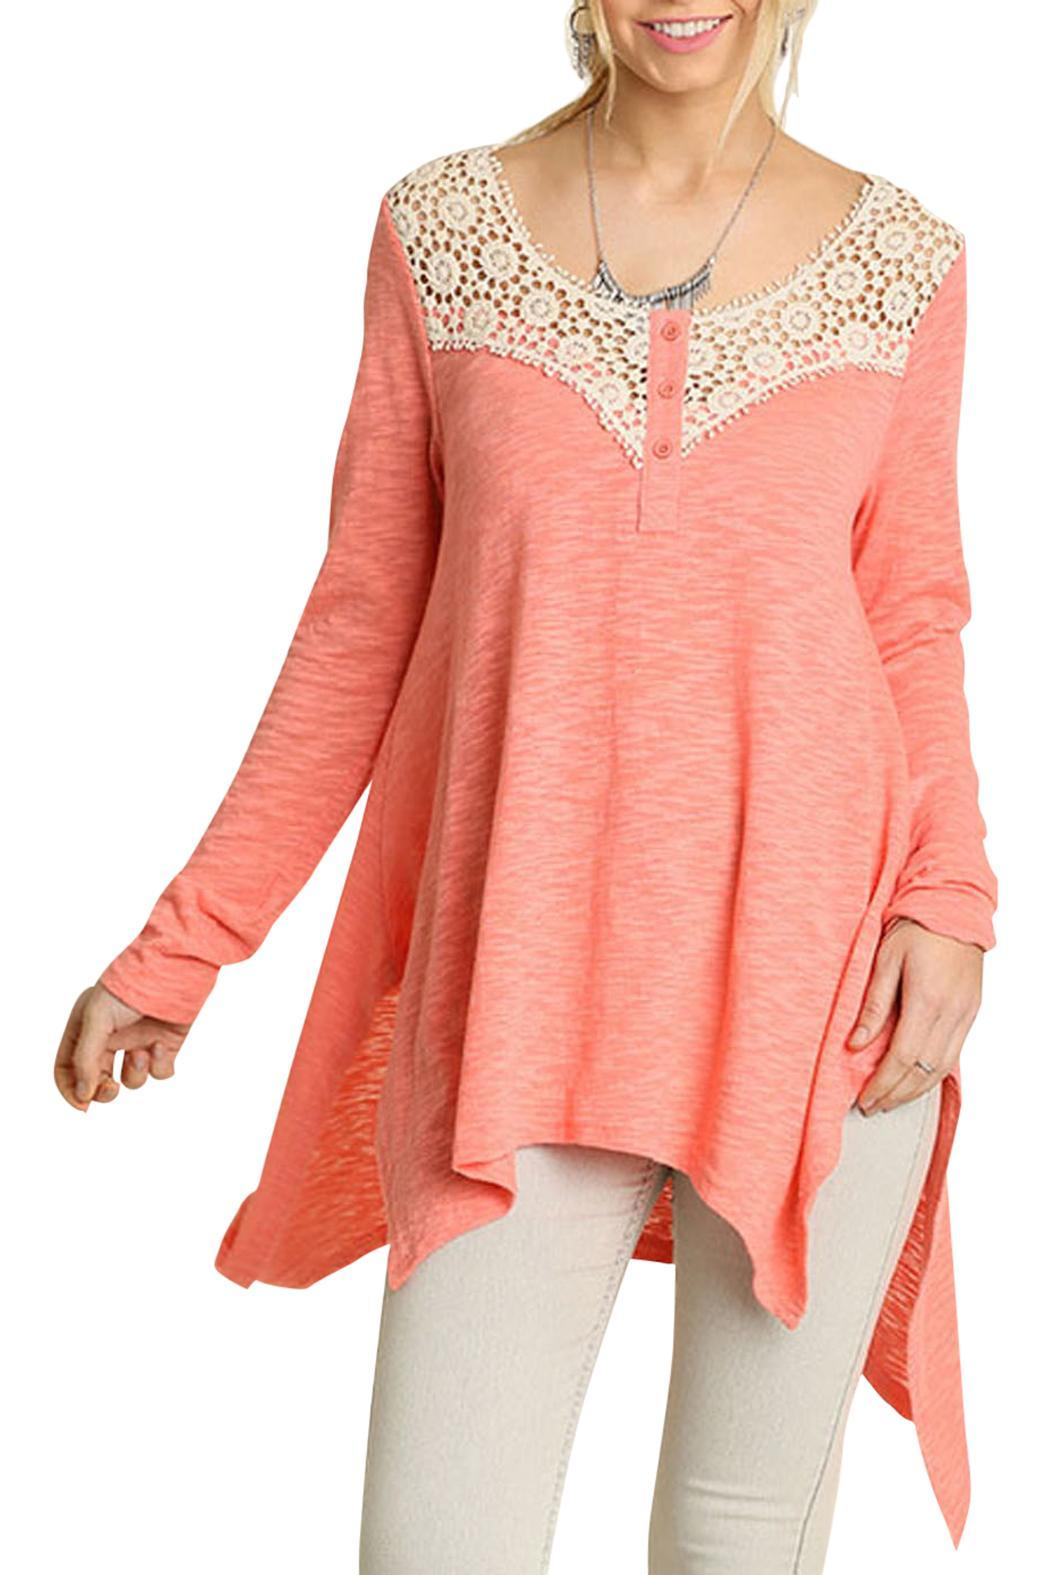 Umgee USA Boho Crochet Top - Front Full Image